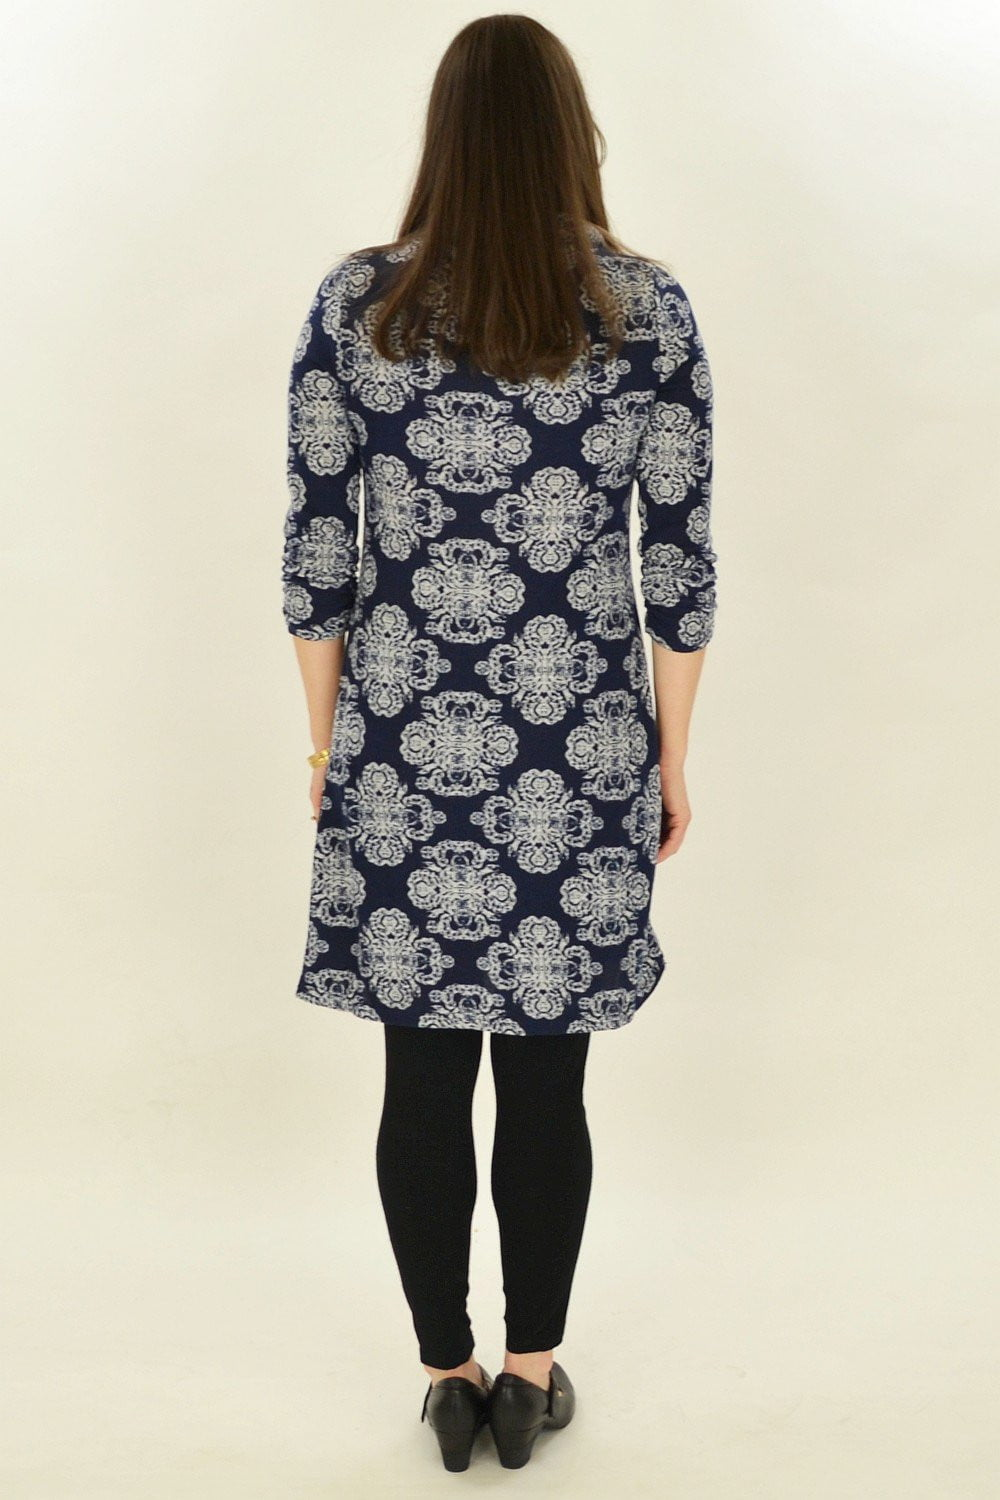 Cosy Maree Tunic | I Love Tunics | Tunic Tops | Tunic | Tunic Dresses  | womens clothing online